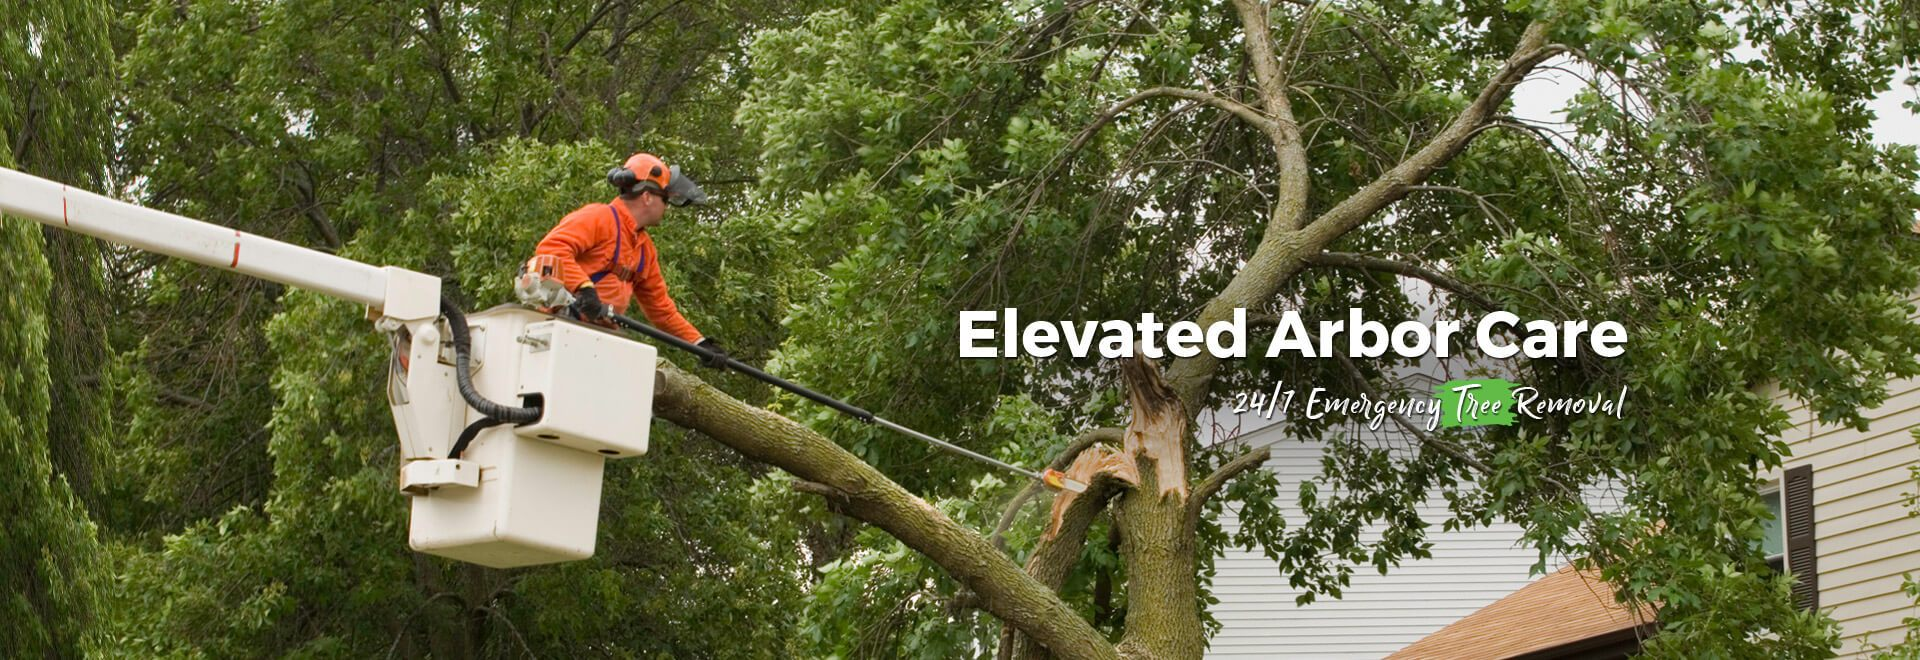 Elevated Arbor Care 24/7 Emergency Tree Removal